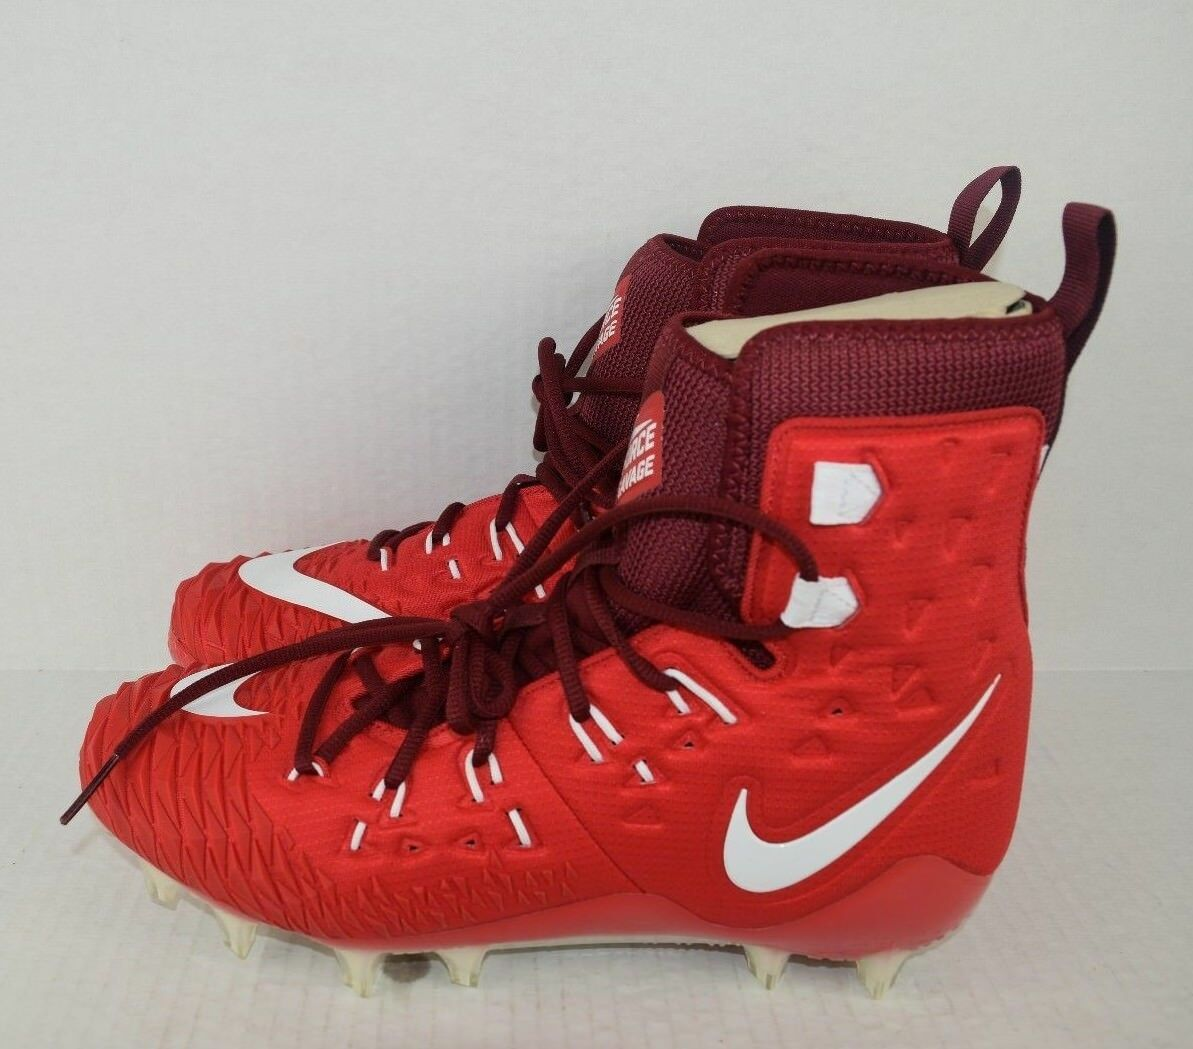 NIKE Force Savage Elite TD Men's Football Cleats 857063-616 Size 10.5 Red White